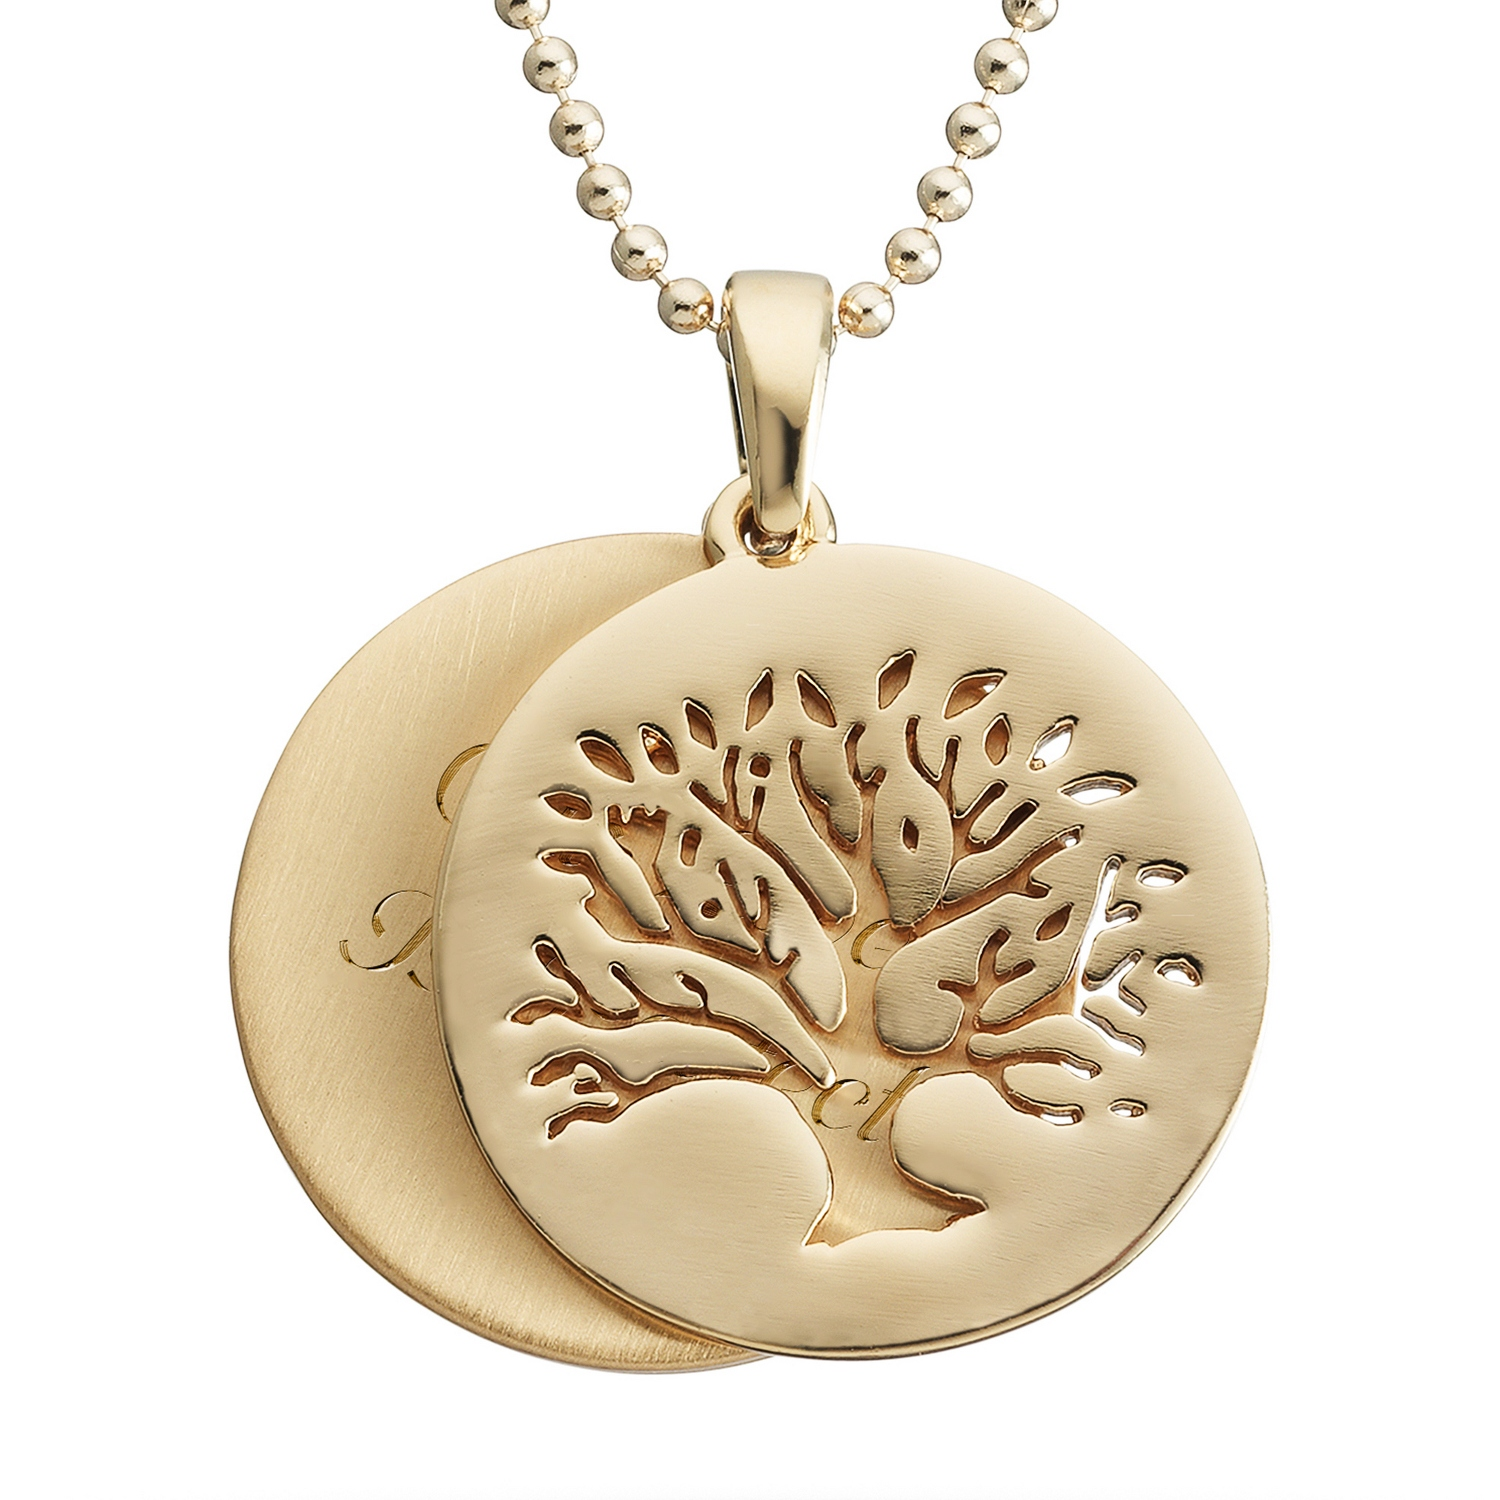 Personalized artisan gold tree of life necklace for What is the meaning of the tree of life jewelry